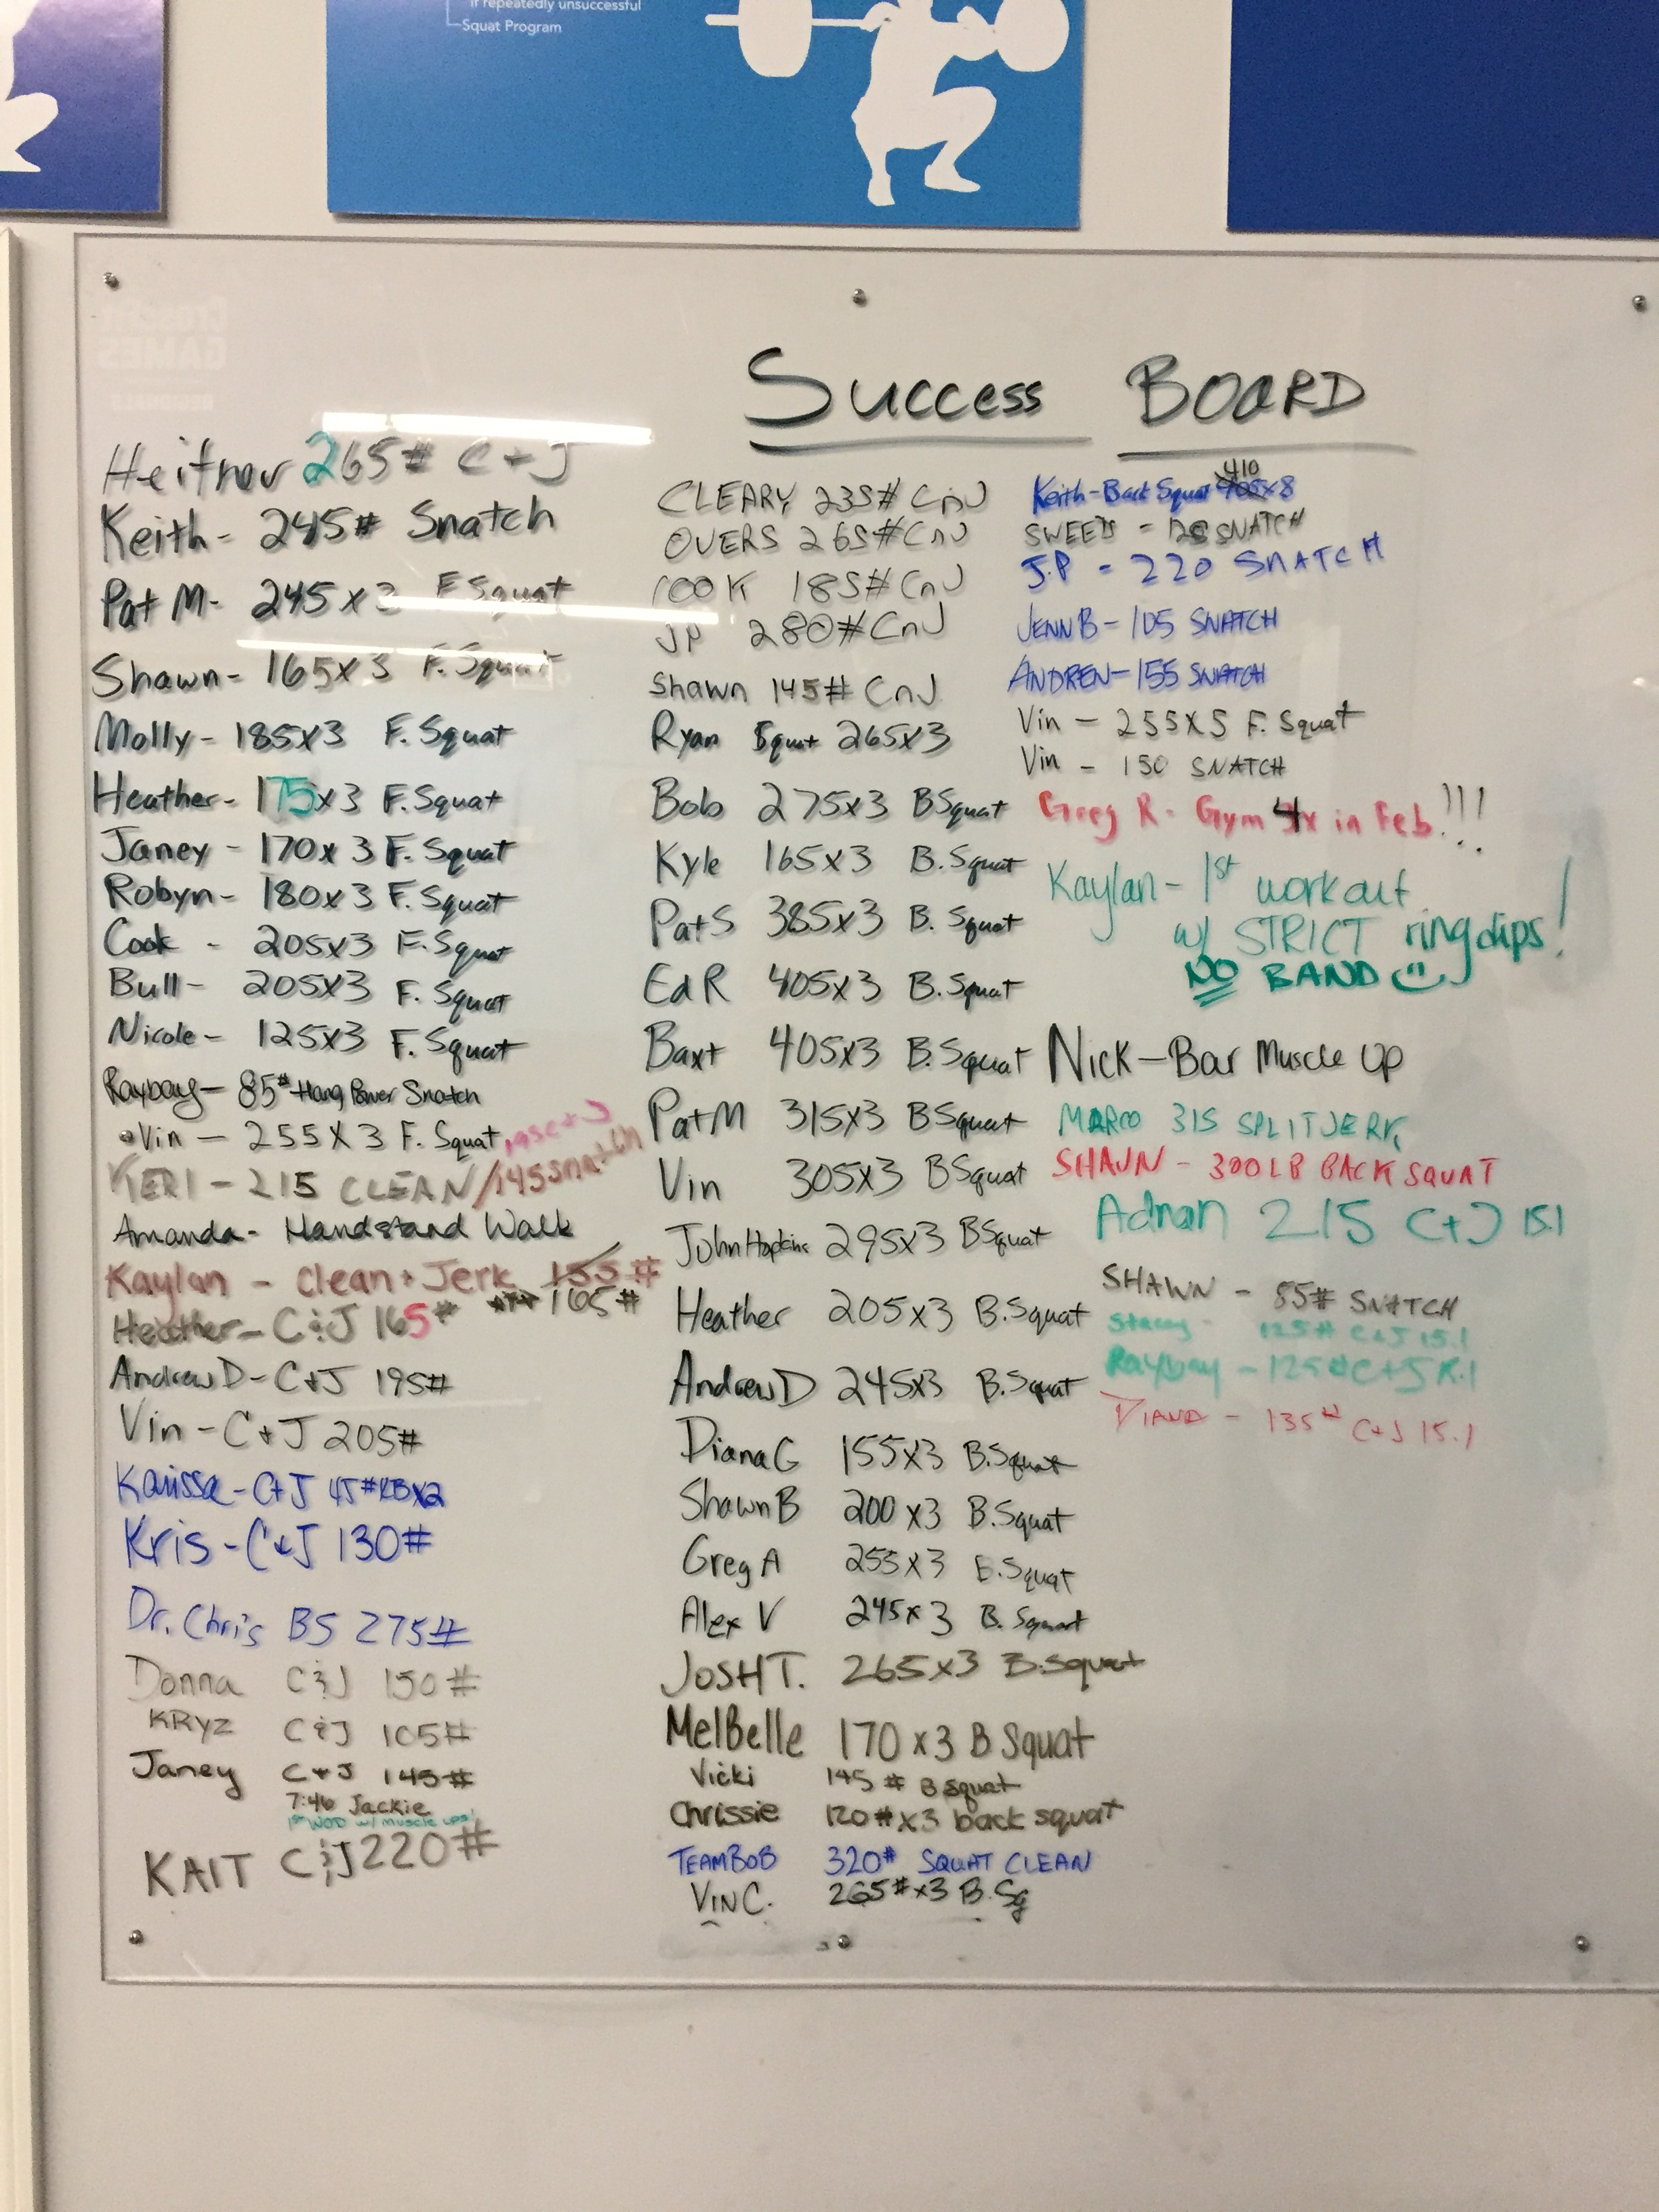 February's success - make sure to jot it down on the board if you do something awesome...